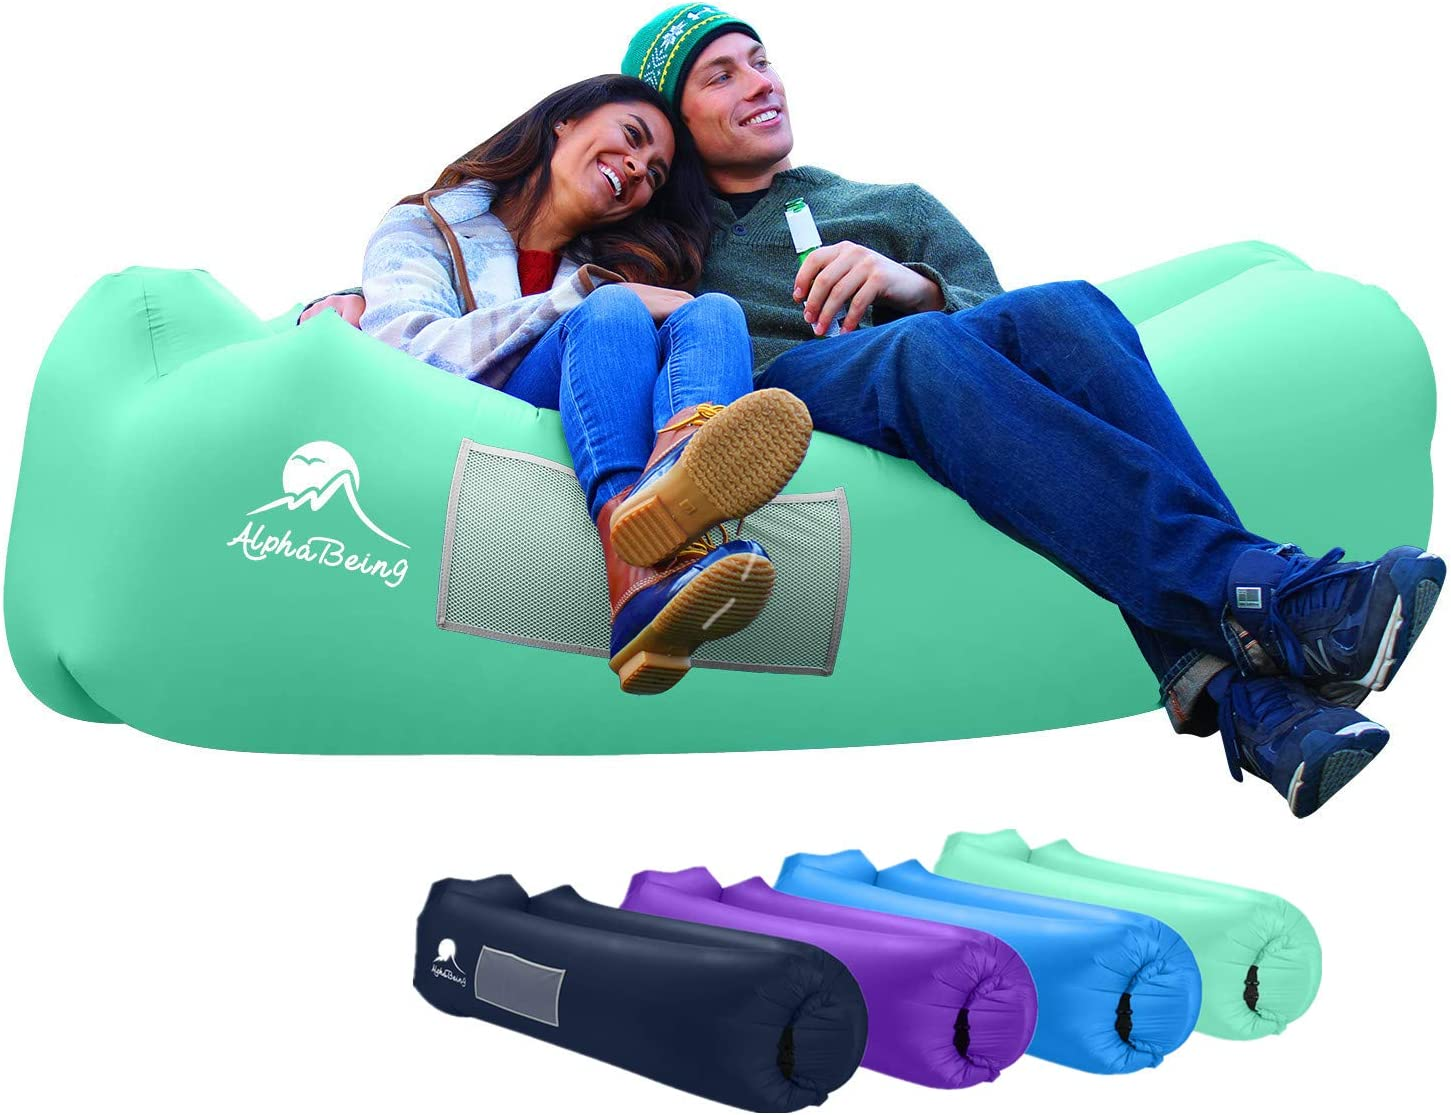 AlphaBeing Inflatable Air Lounger